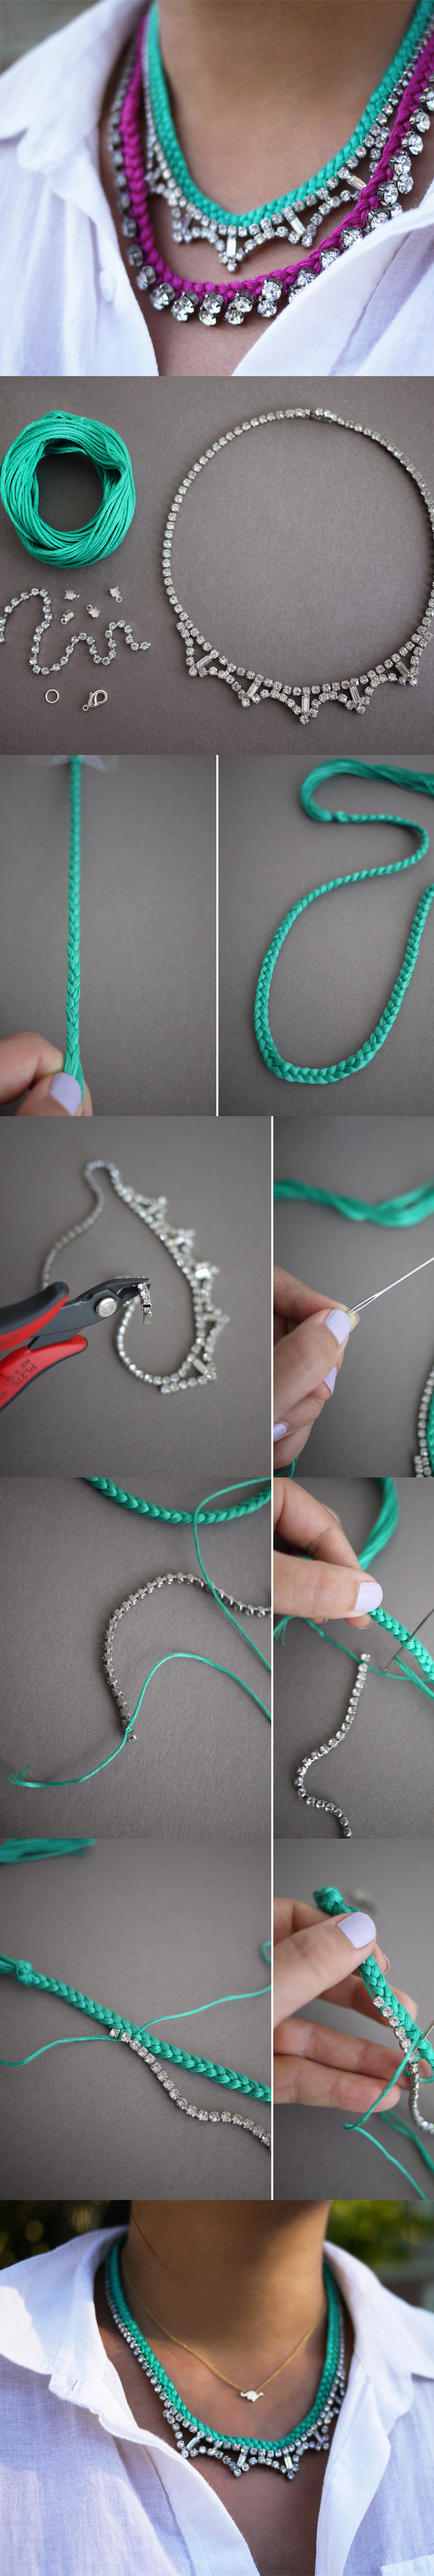 Diy Design It Yourself: DIY! The Most Beautiful NECKLACE